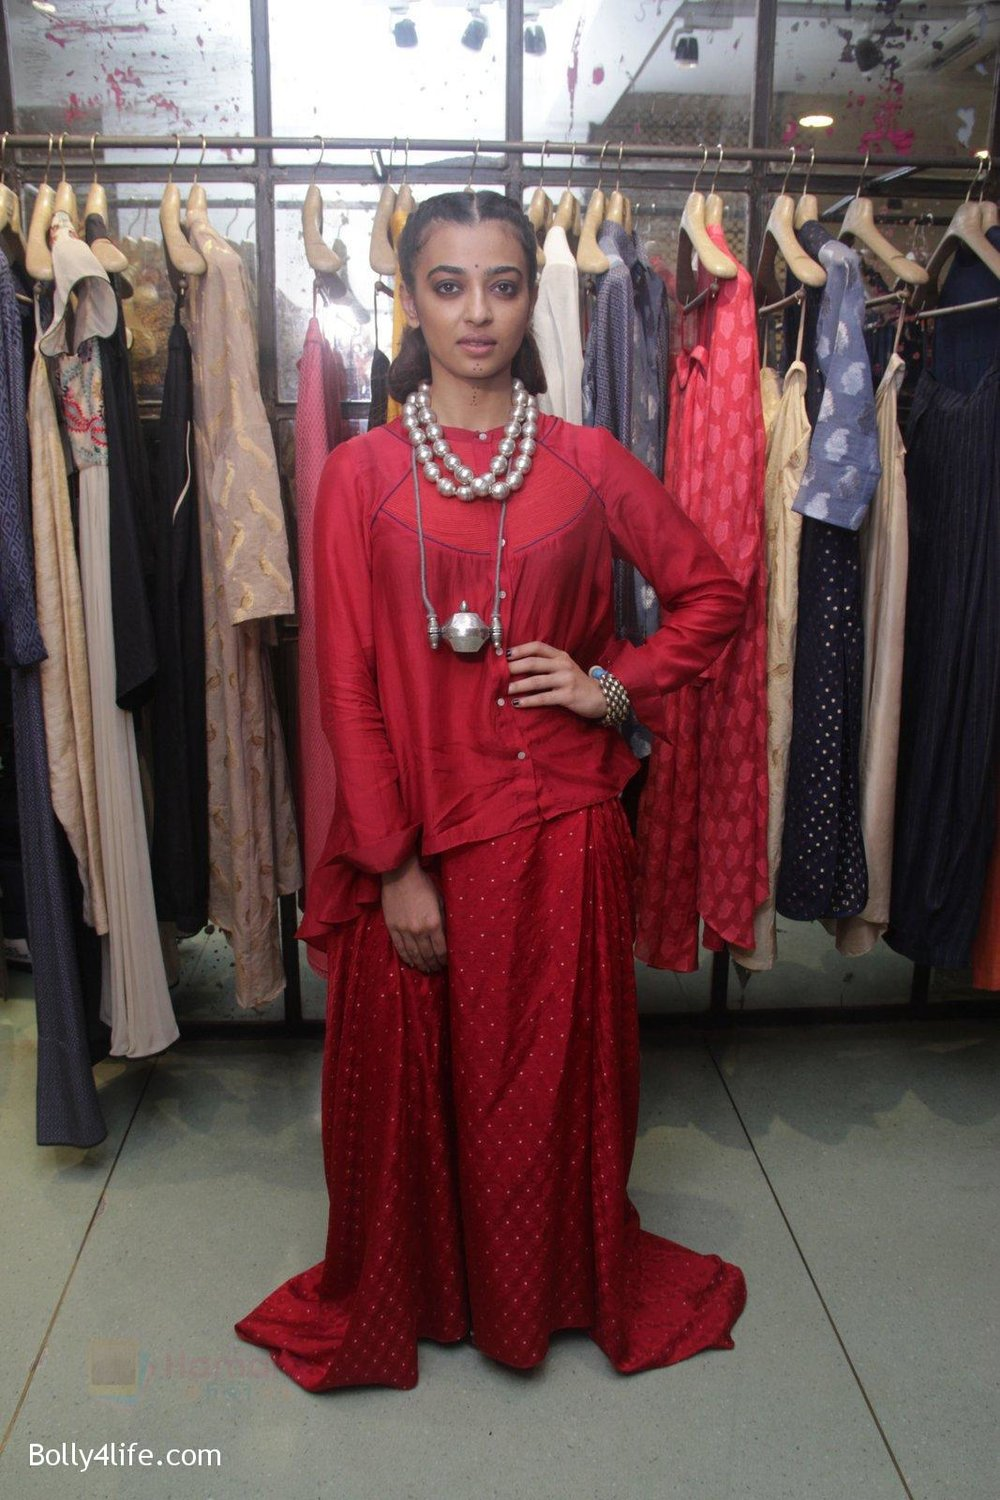 Radhika-Apte-unveil-Festive-Edit-of-new-Luxury-Pret-label-AMOH-by-Designers-Monica-Karishma-of-JADE-on-26th-Sept-2016-14.jpg